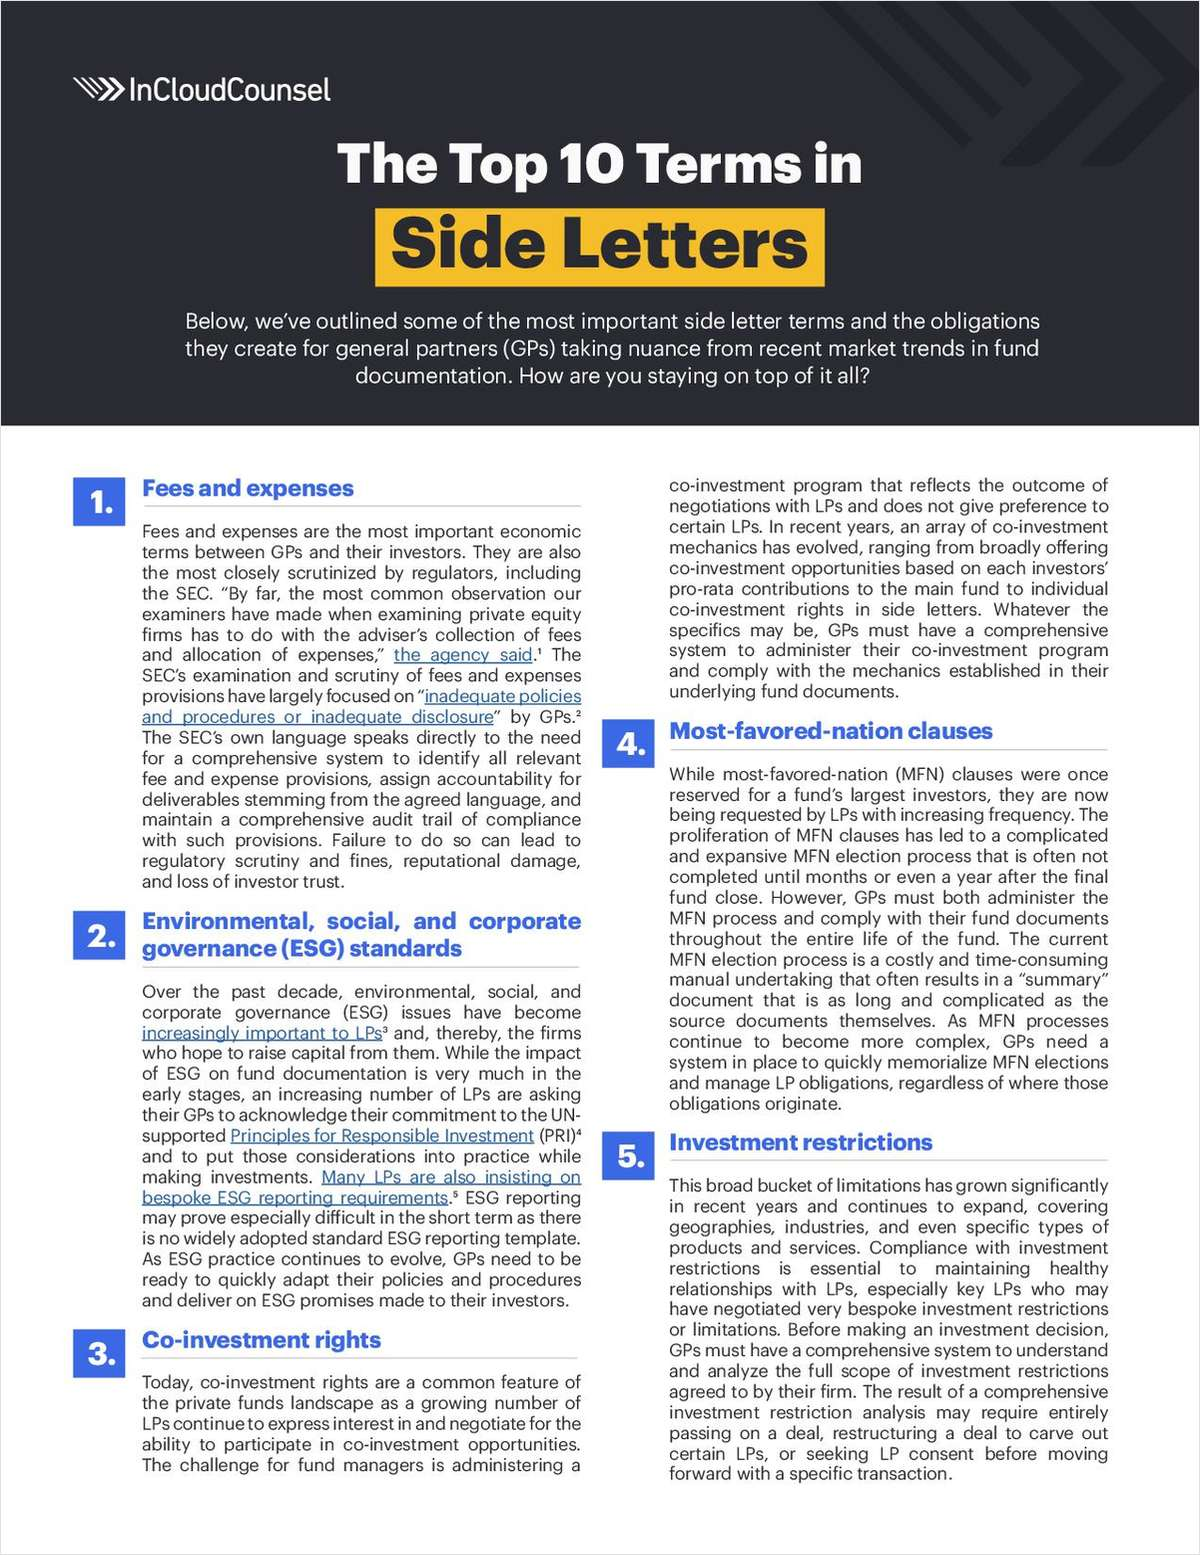 This guide outlines key side letter terms, highlights some of the challenges in complying with those terms, and assesses the potential operational impact for General Partners (GPs). While these are just a handful of the most important provisions commonly found in side letters, GPs are often dealing with thousands of individual obligations, to multiple Limited Partners (LPs), across multiple funds, all at the same time.